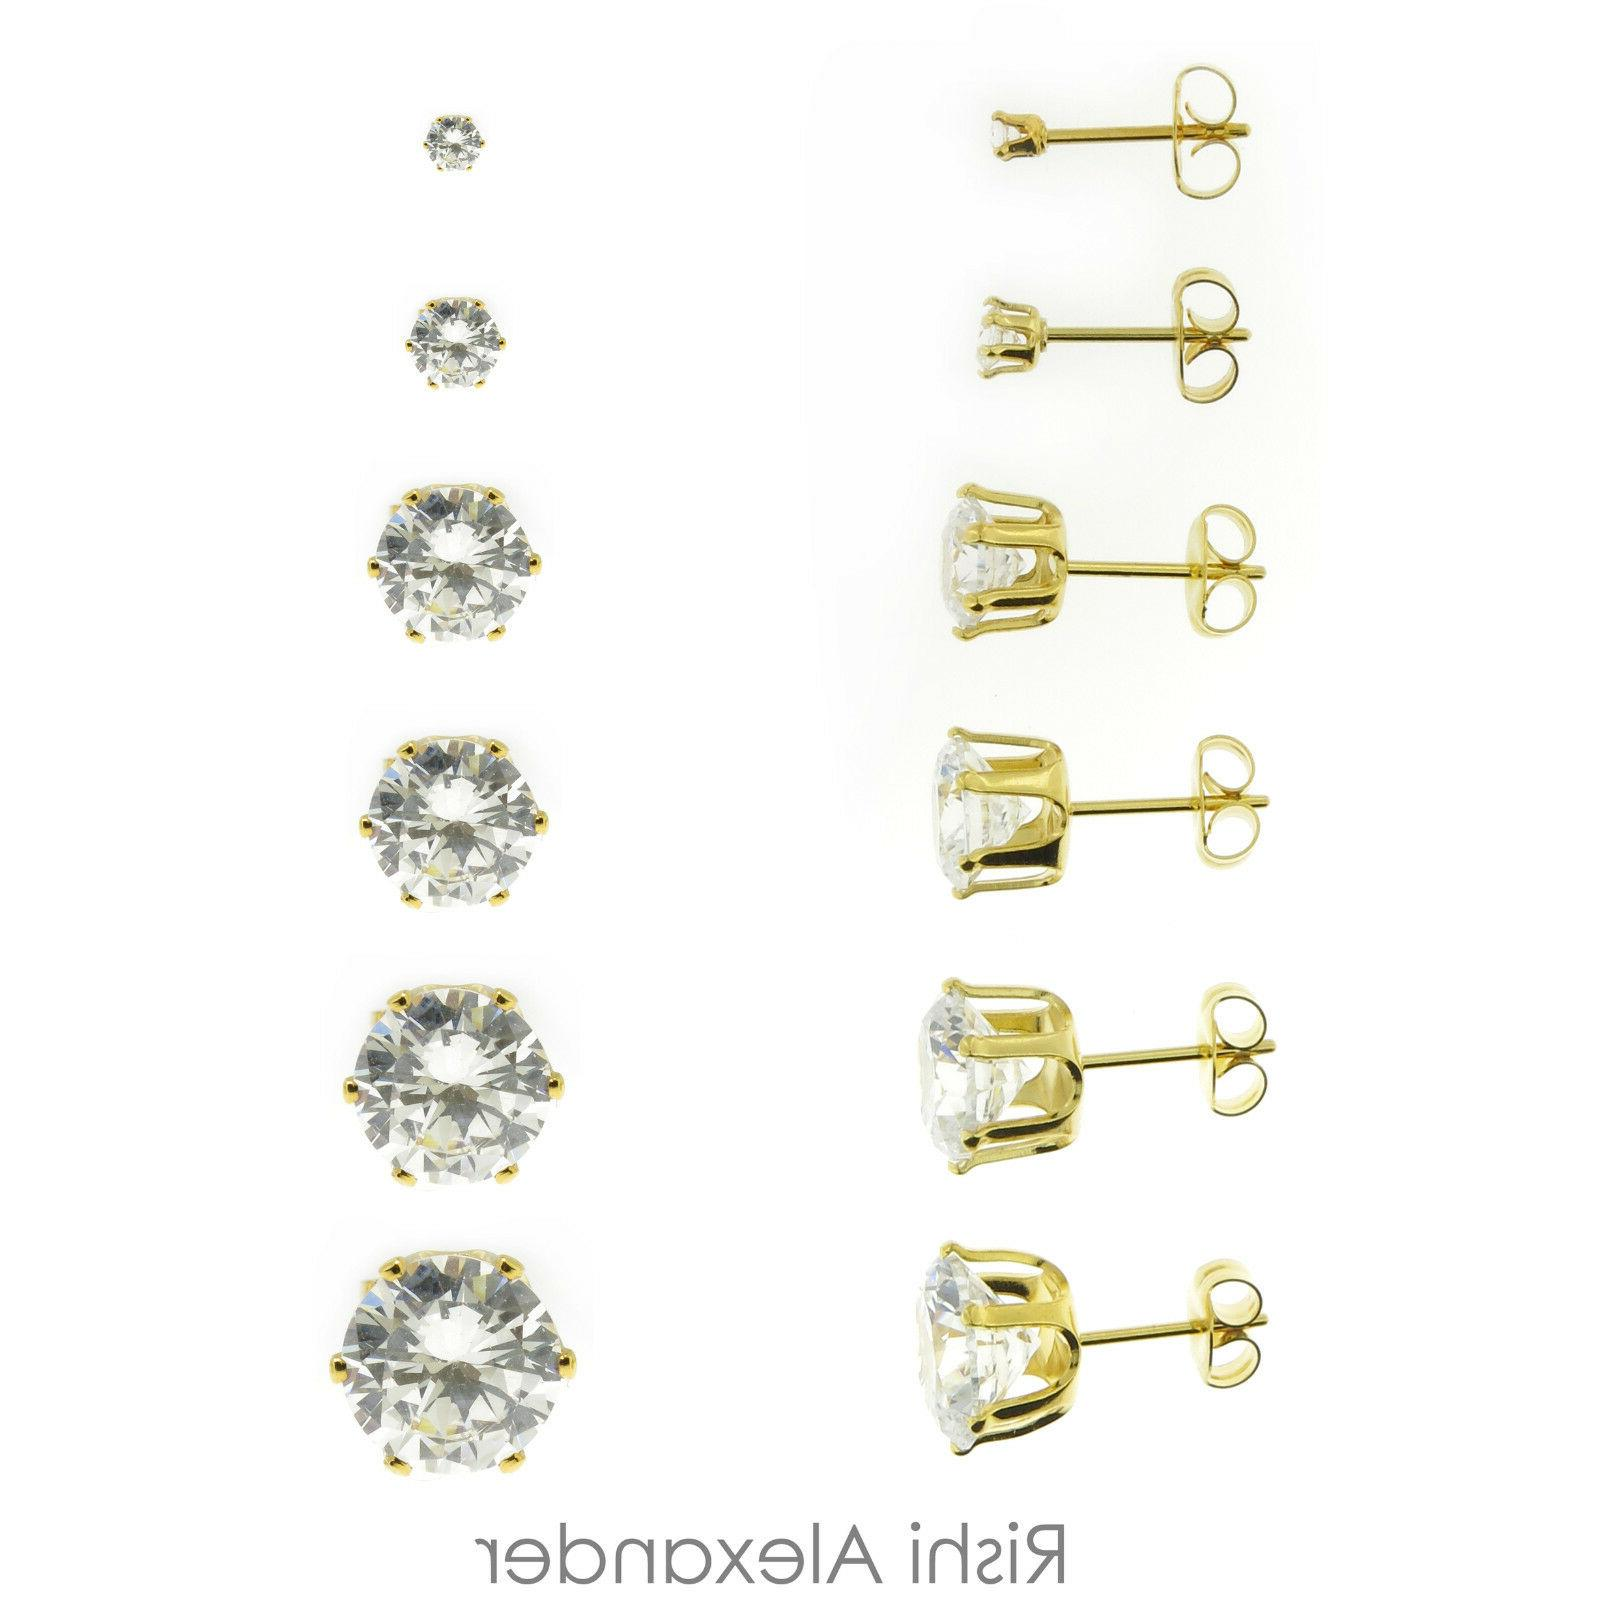 18k gold filled round cubic zirconia clear